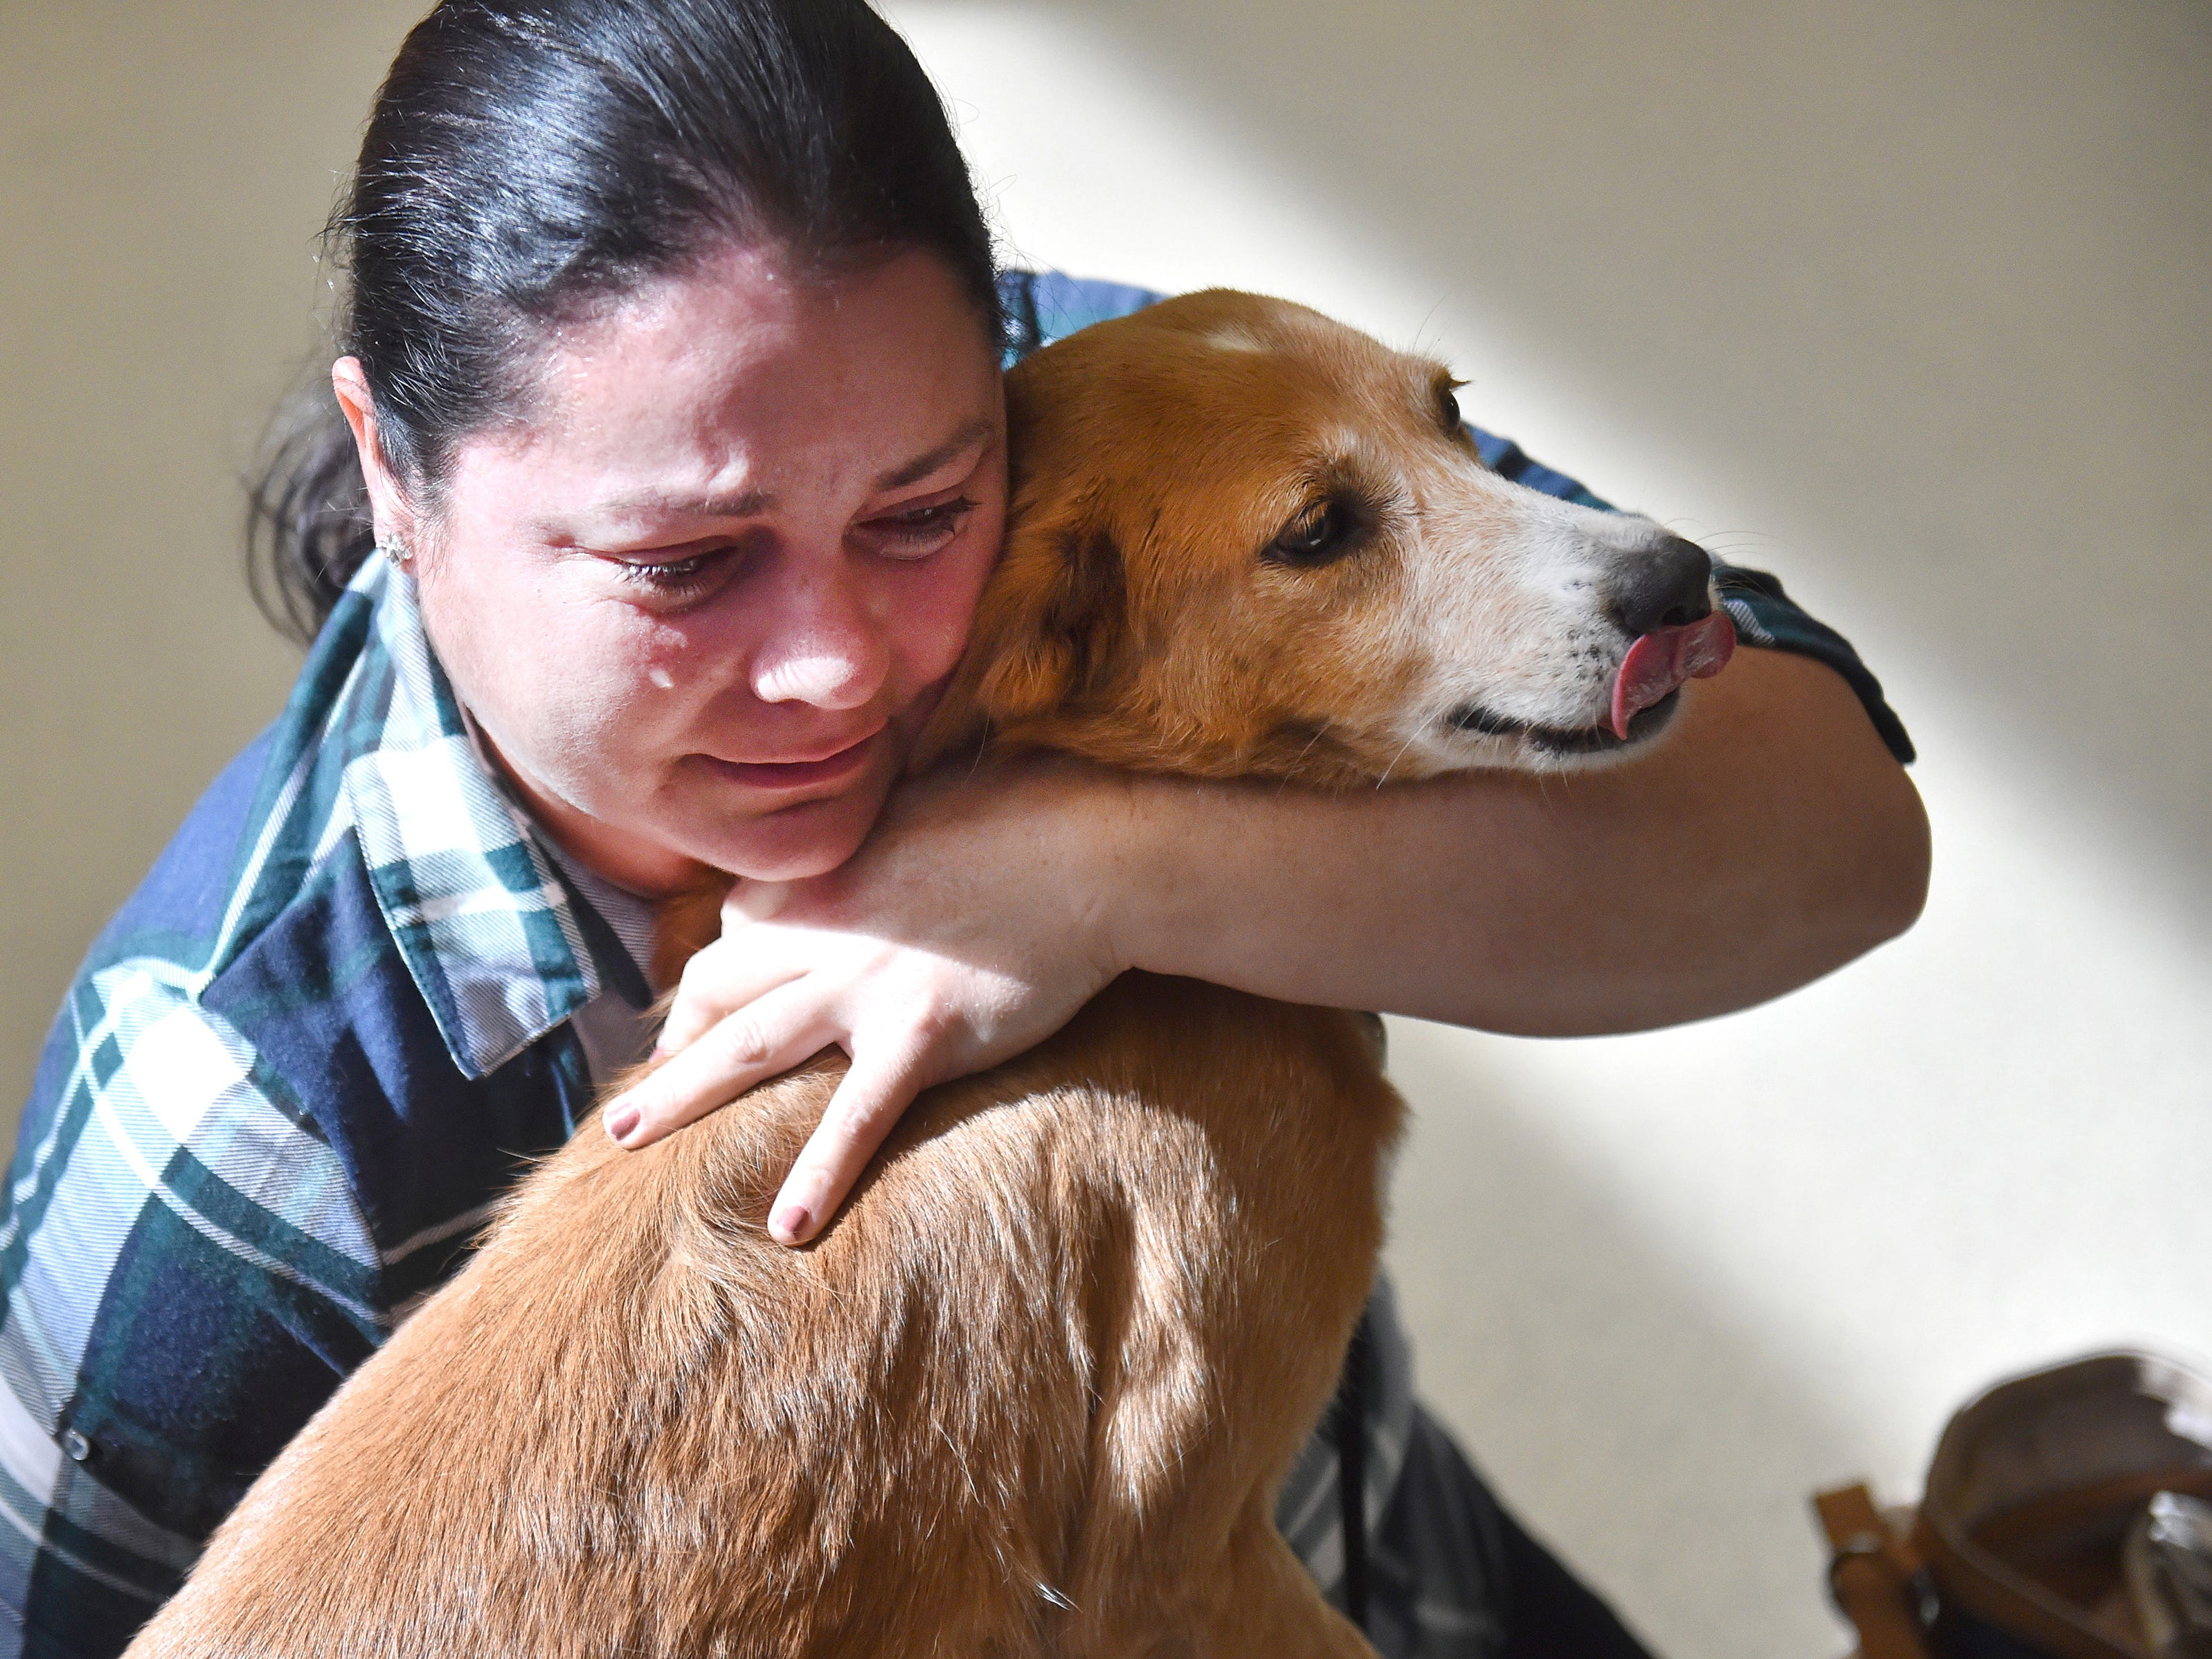 Sonaida Marrero, of Riverview, sheds tears of joy upon being reunited with her dog Susie at the HUmane Society of Vero Beach and Indian River County after being apart for several months. Thirty dogs from Puerto Rico are flown to Vero Beach Regional Airport on Sunday, Jan. 28, 2018, where they are received by the staff of Humane Society of Vero Beach and Indian River County. The dogs were then transported to the Humane Society in Vero Beach where they will later be reunited with their families, most of which evacuated Puerto Rico after Hurricane Maria hit in September 2017.